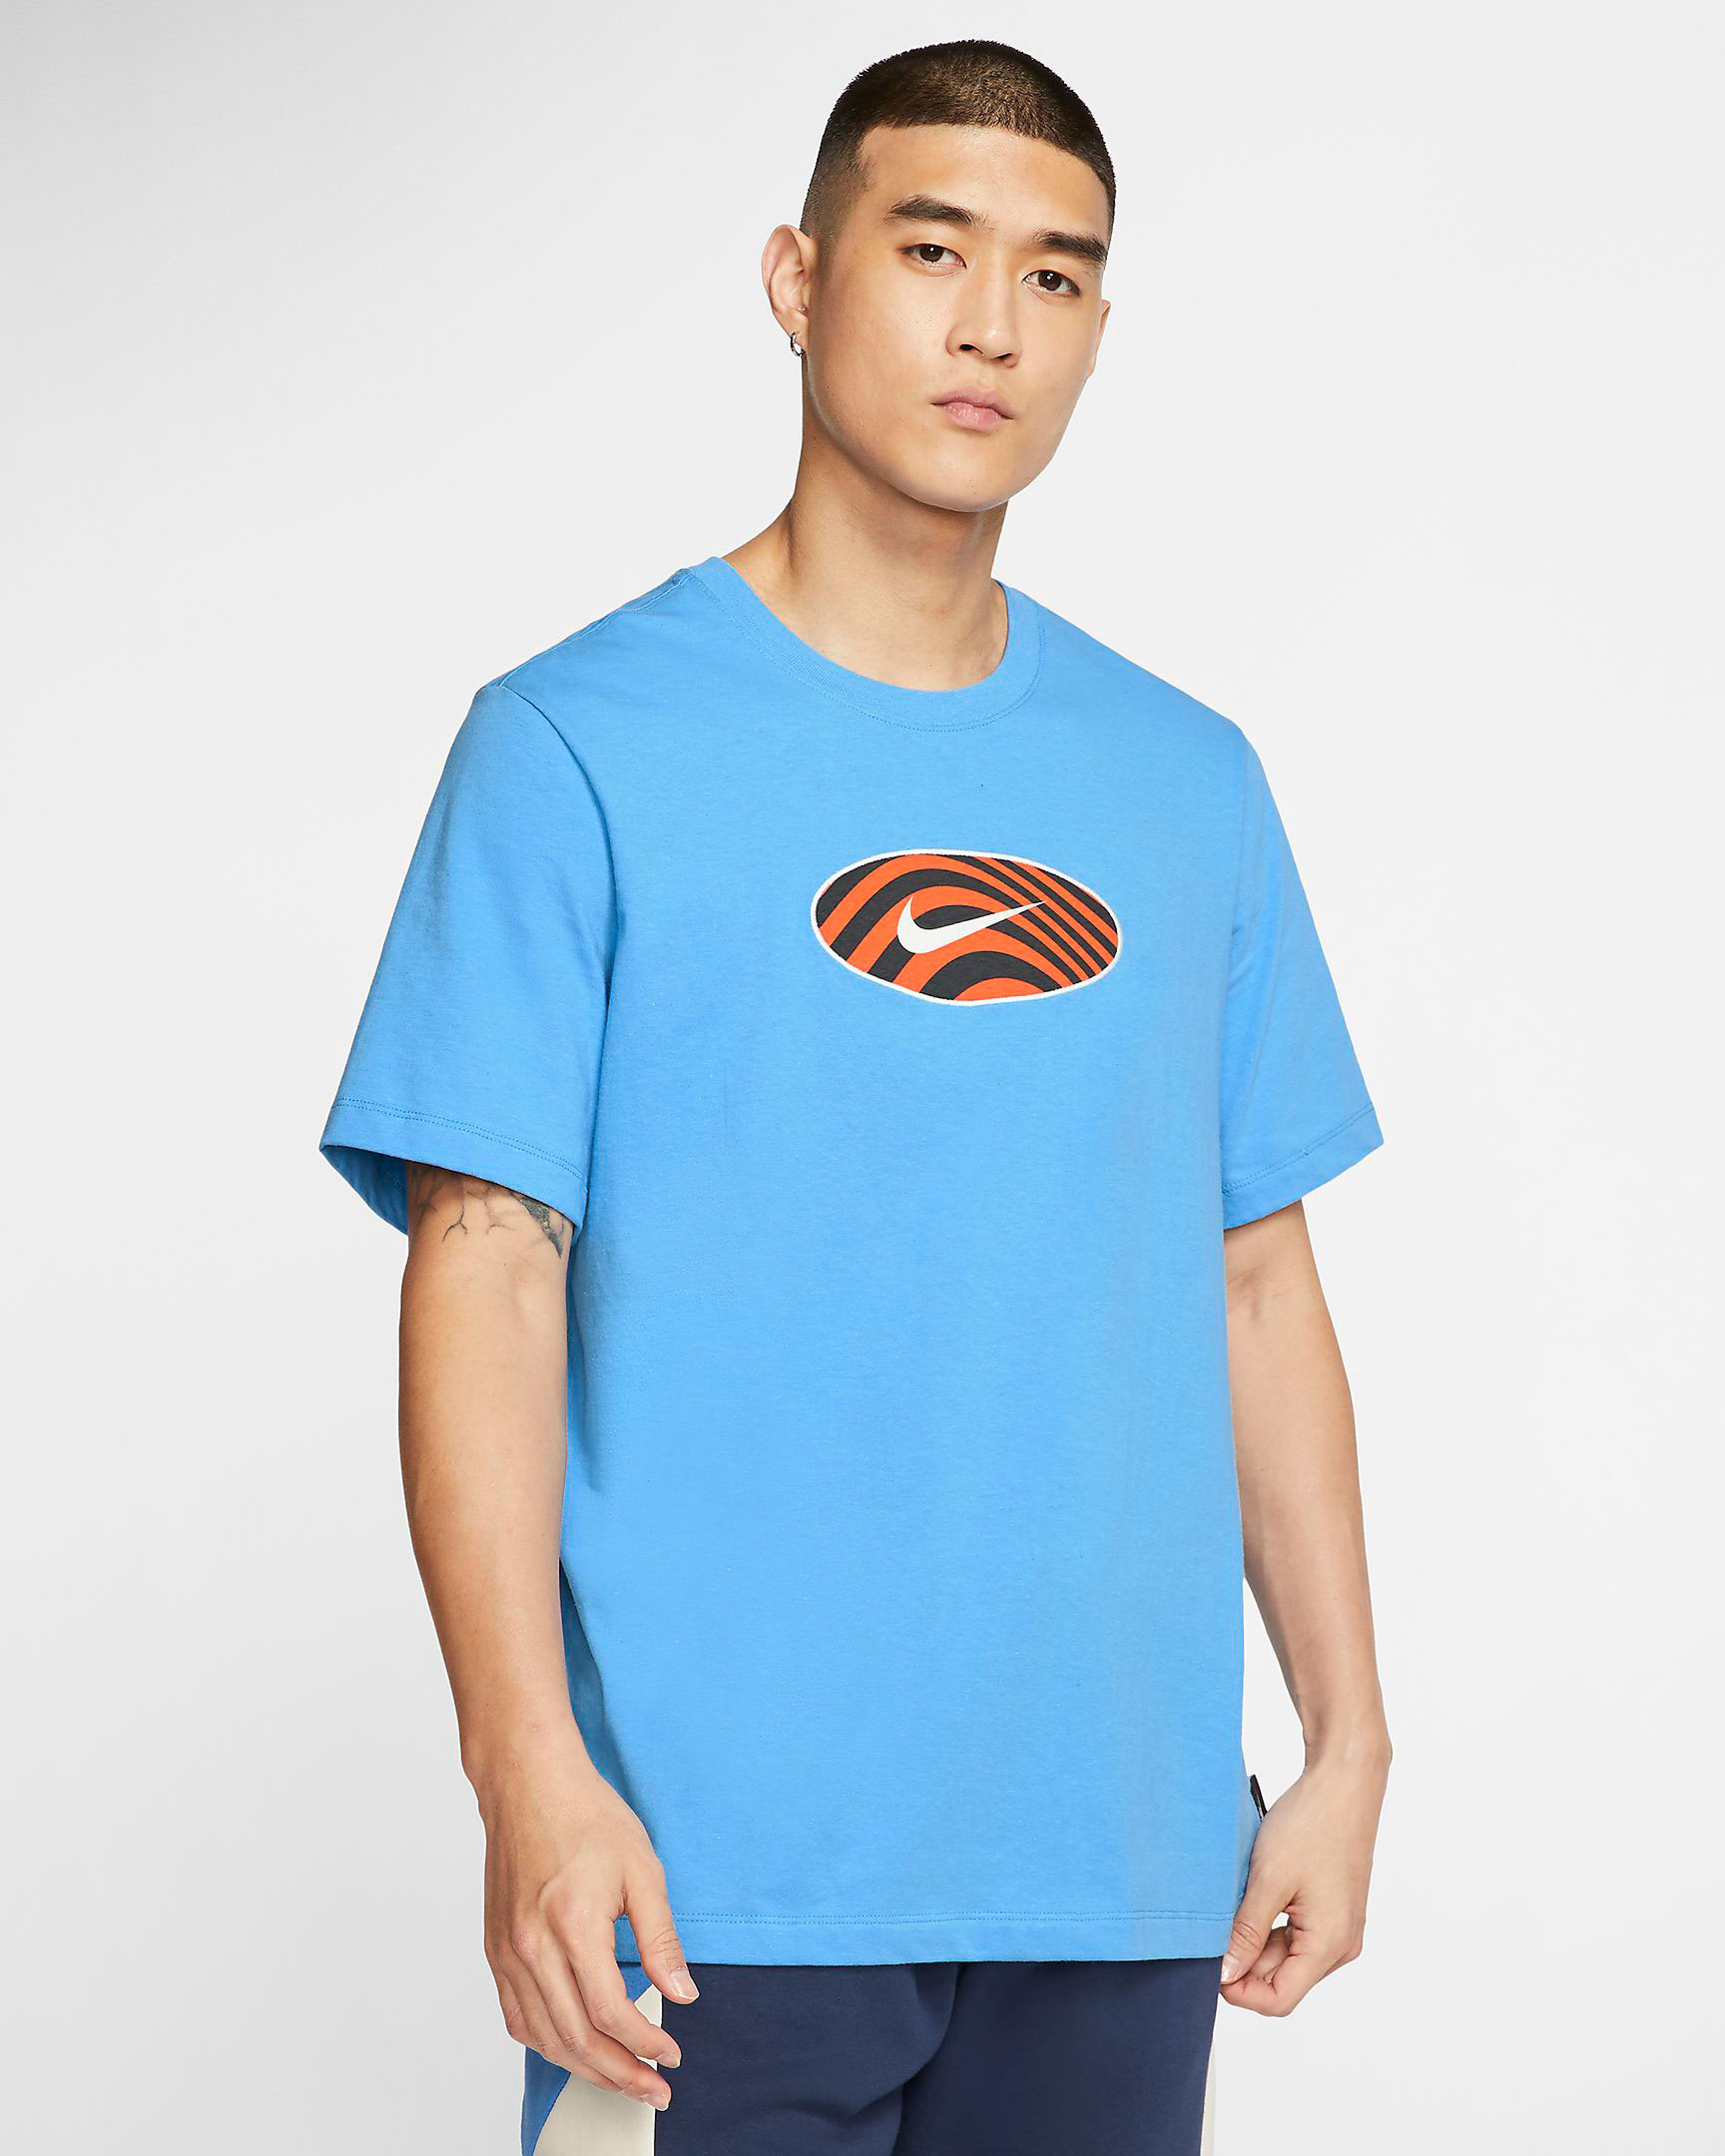 nike-air-max-nrg-shirt-blue-orange